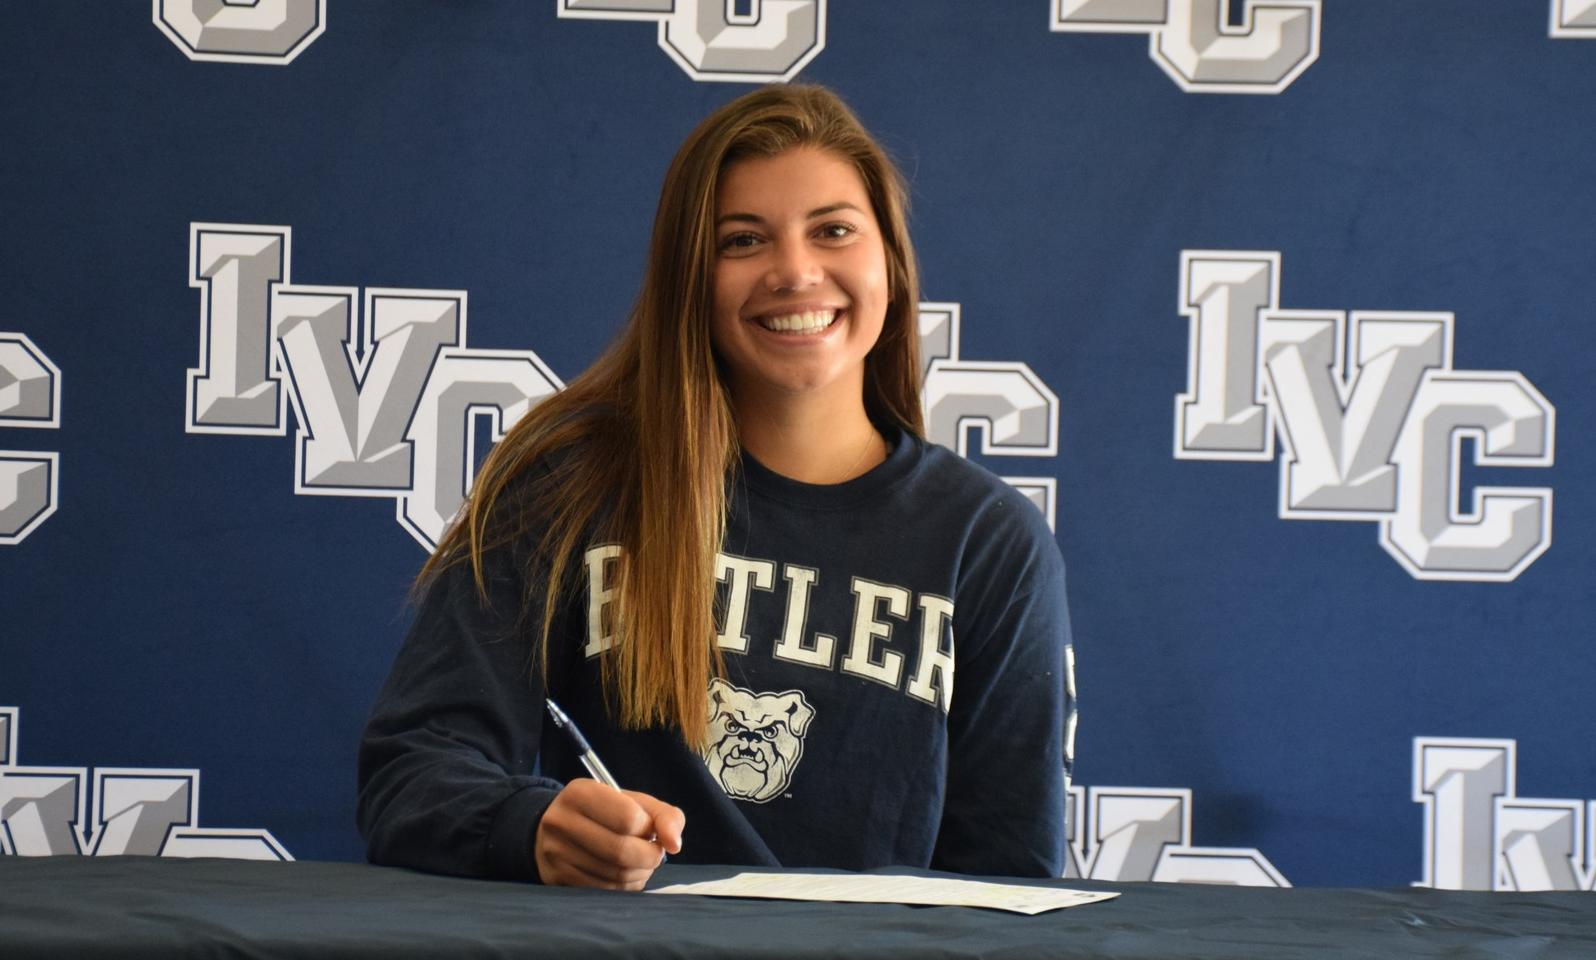 Women's volleyball player Megan Ramseyer headed to Butler